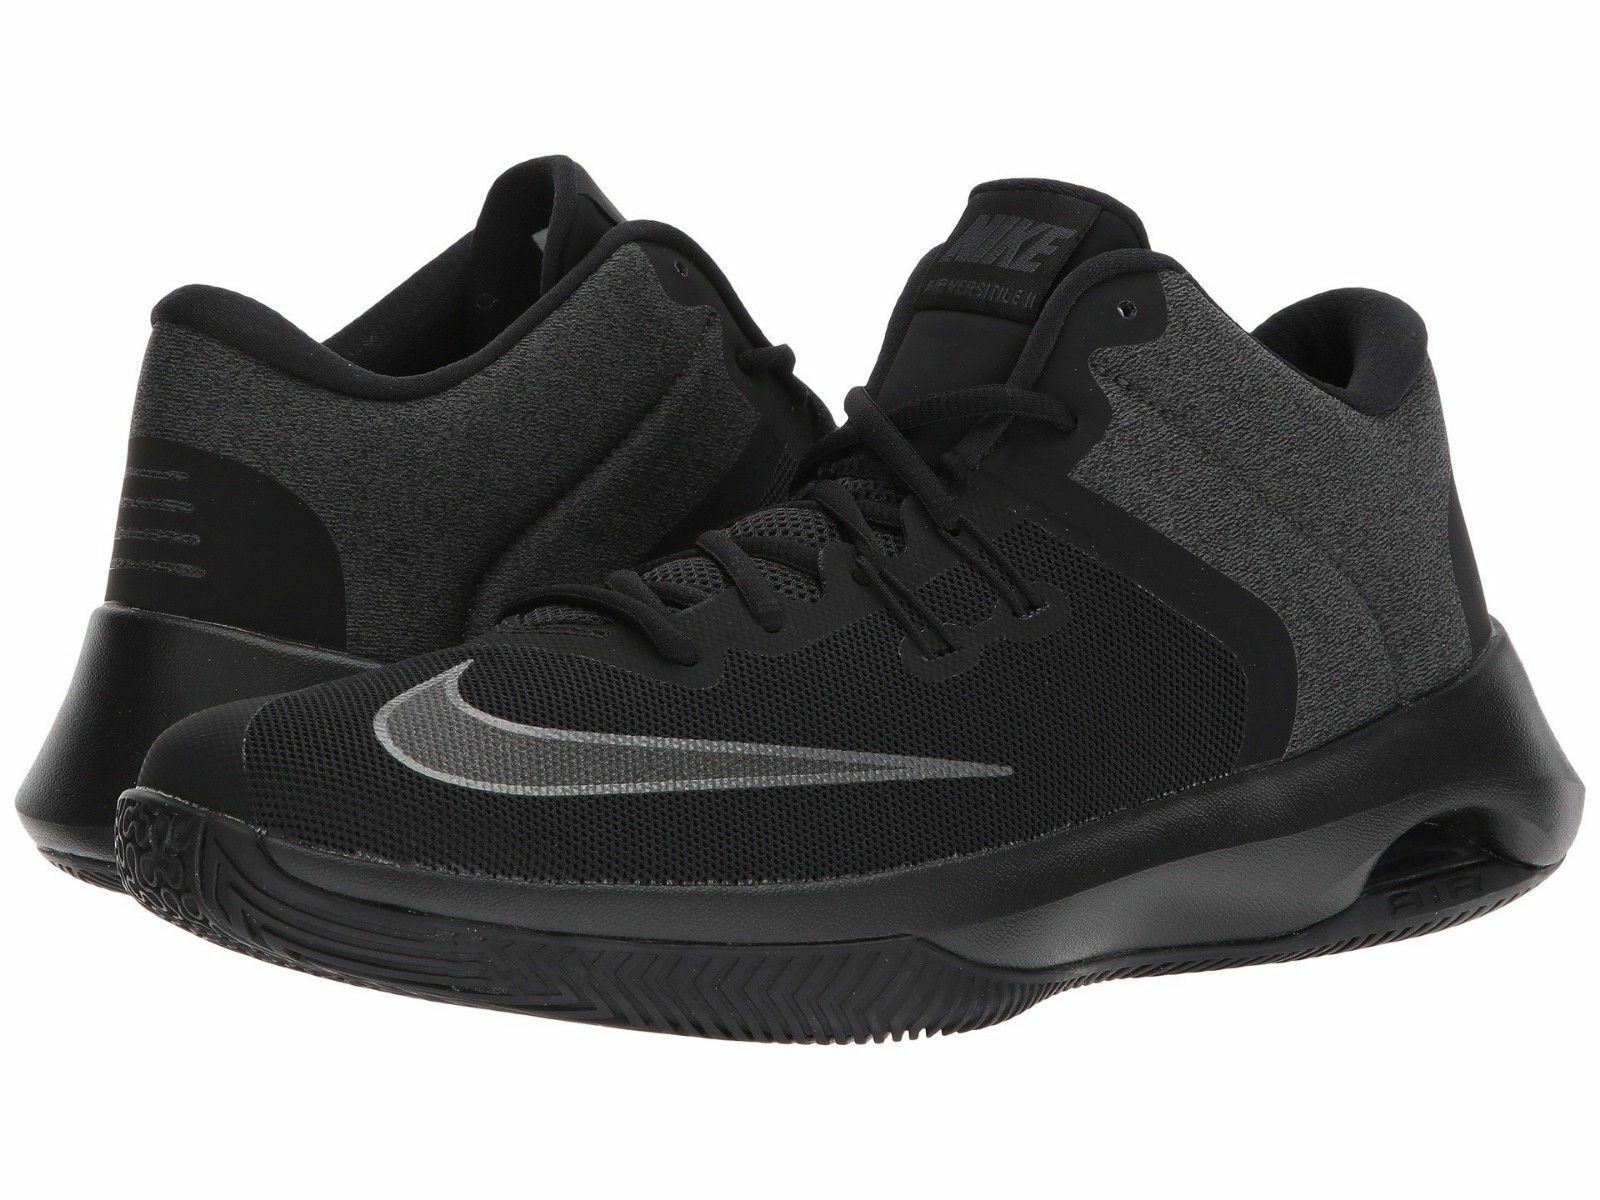 NIKE AIR VERSITILE II NBK LOW SNEAKERS MEN SHOES BLACK A3819-002 SIZE 11 NEW